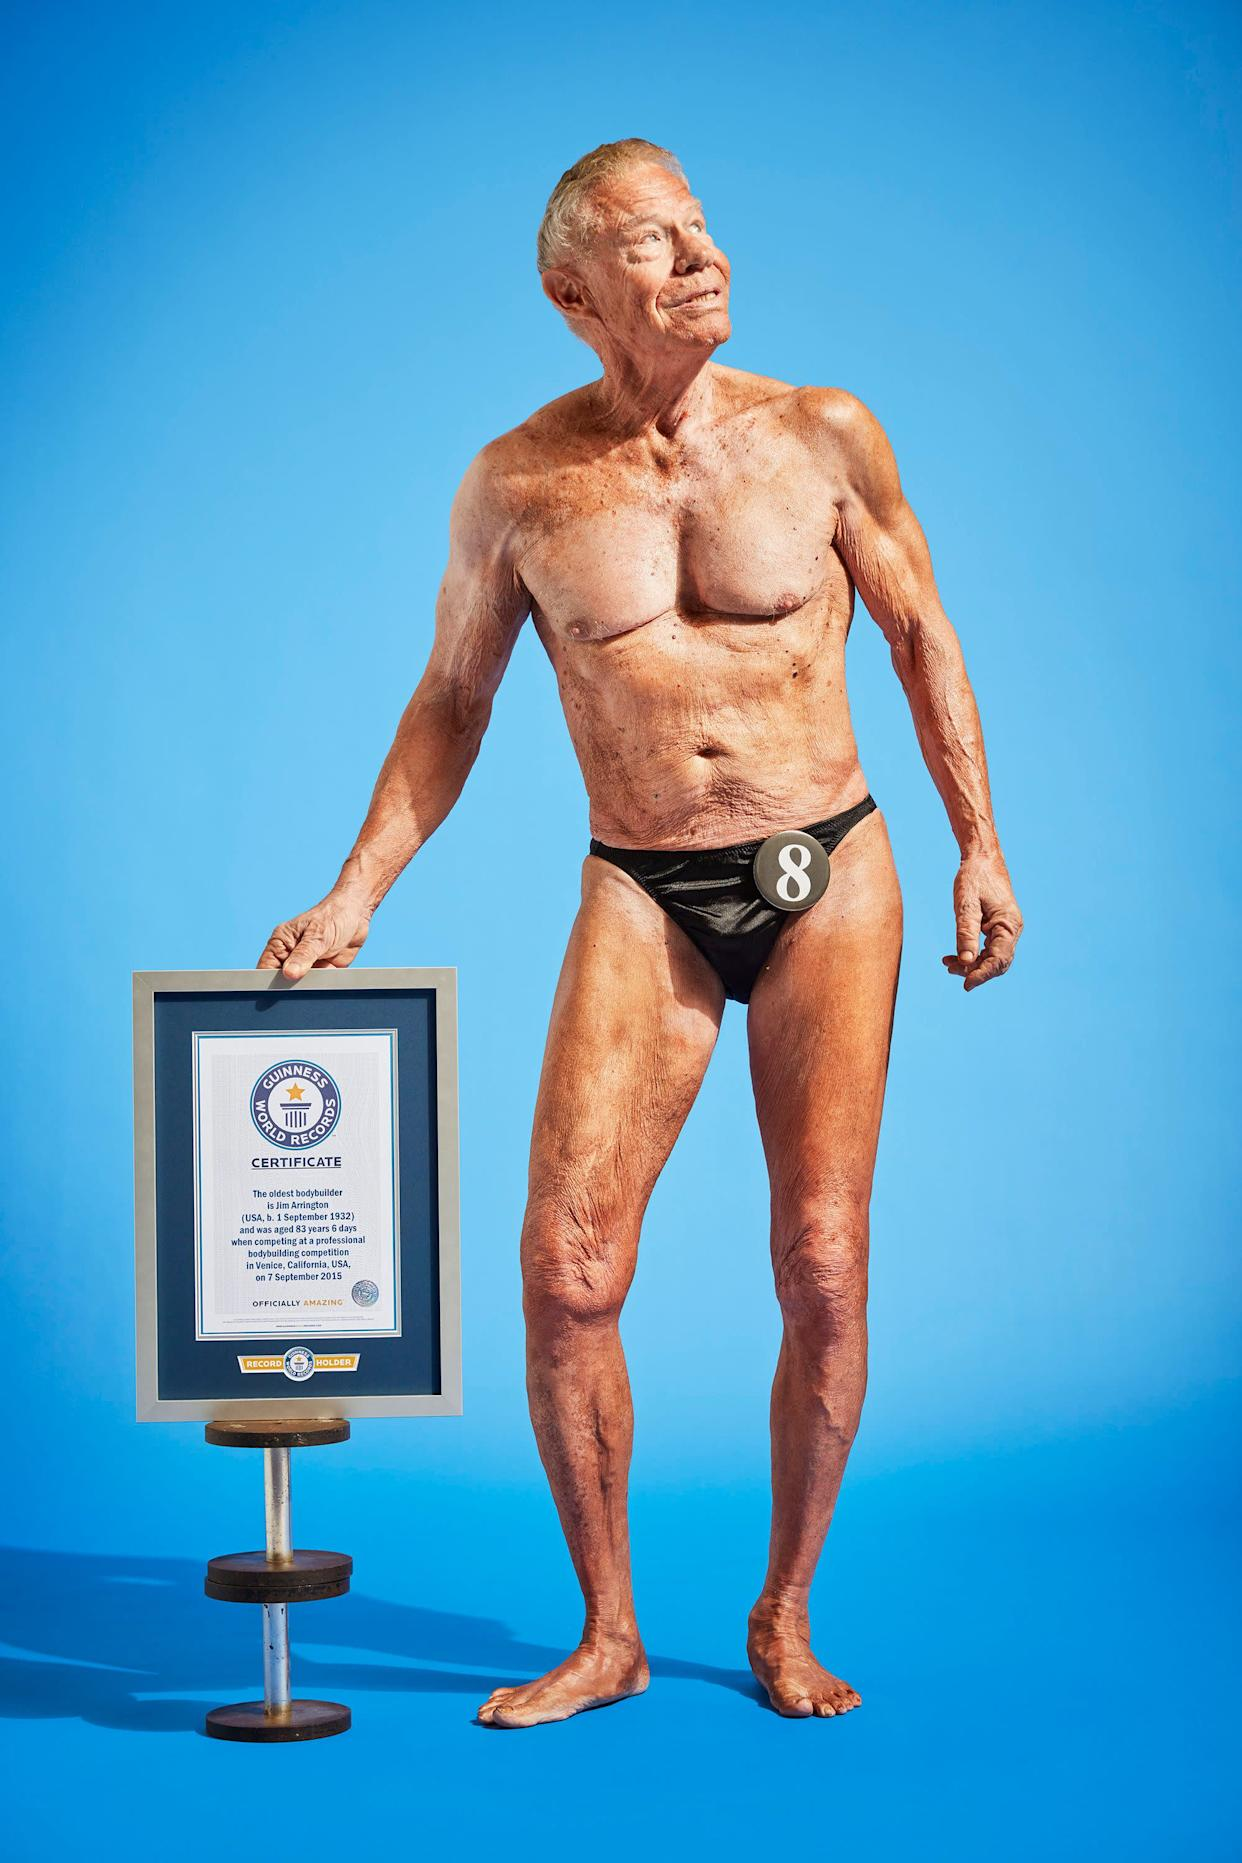 Jim Arrington was officially declared the World's Oldest Bodybuilder in 2013 when he competed in a professional contestin Venice Beach, California, at the age of 83 years, six days.